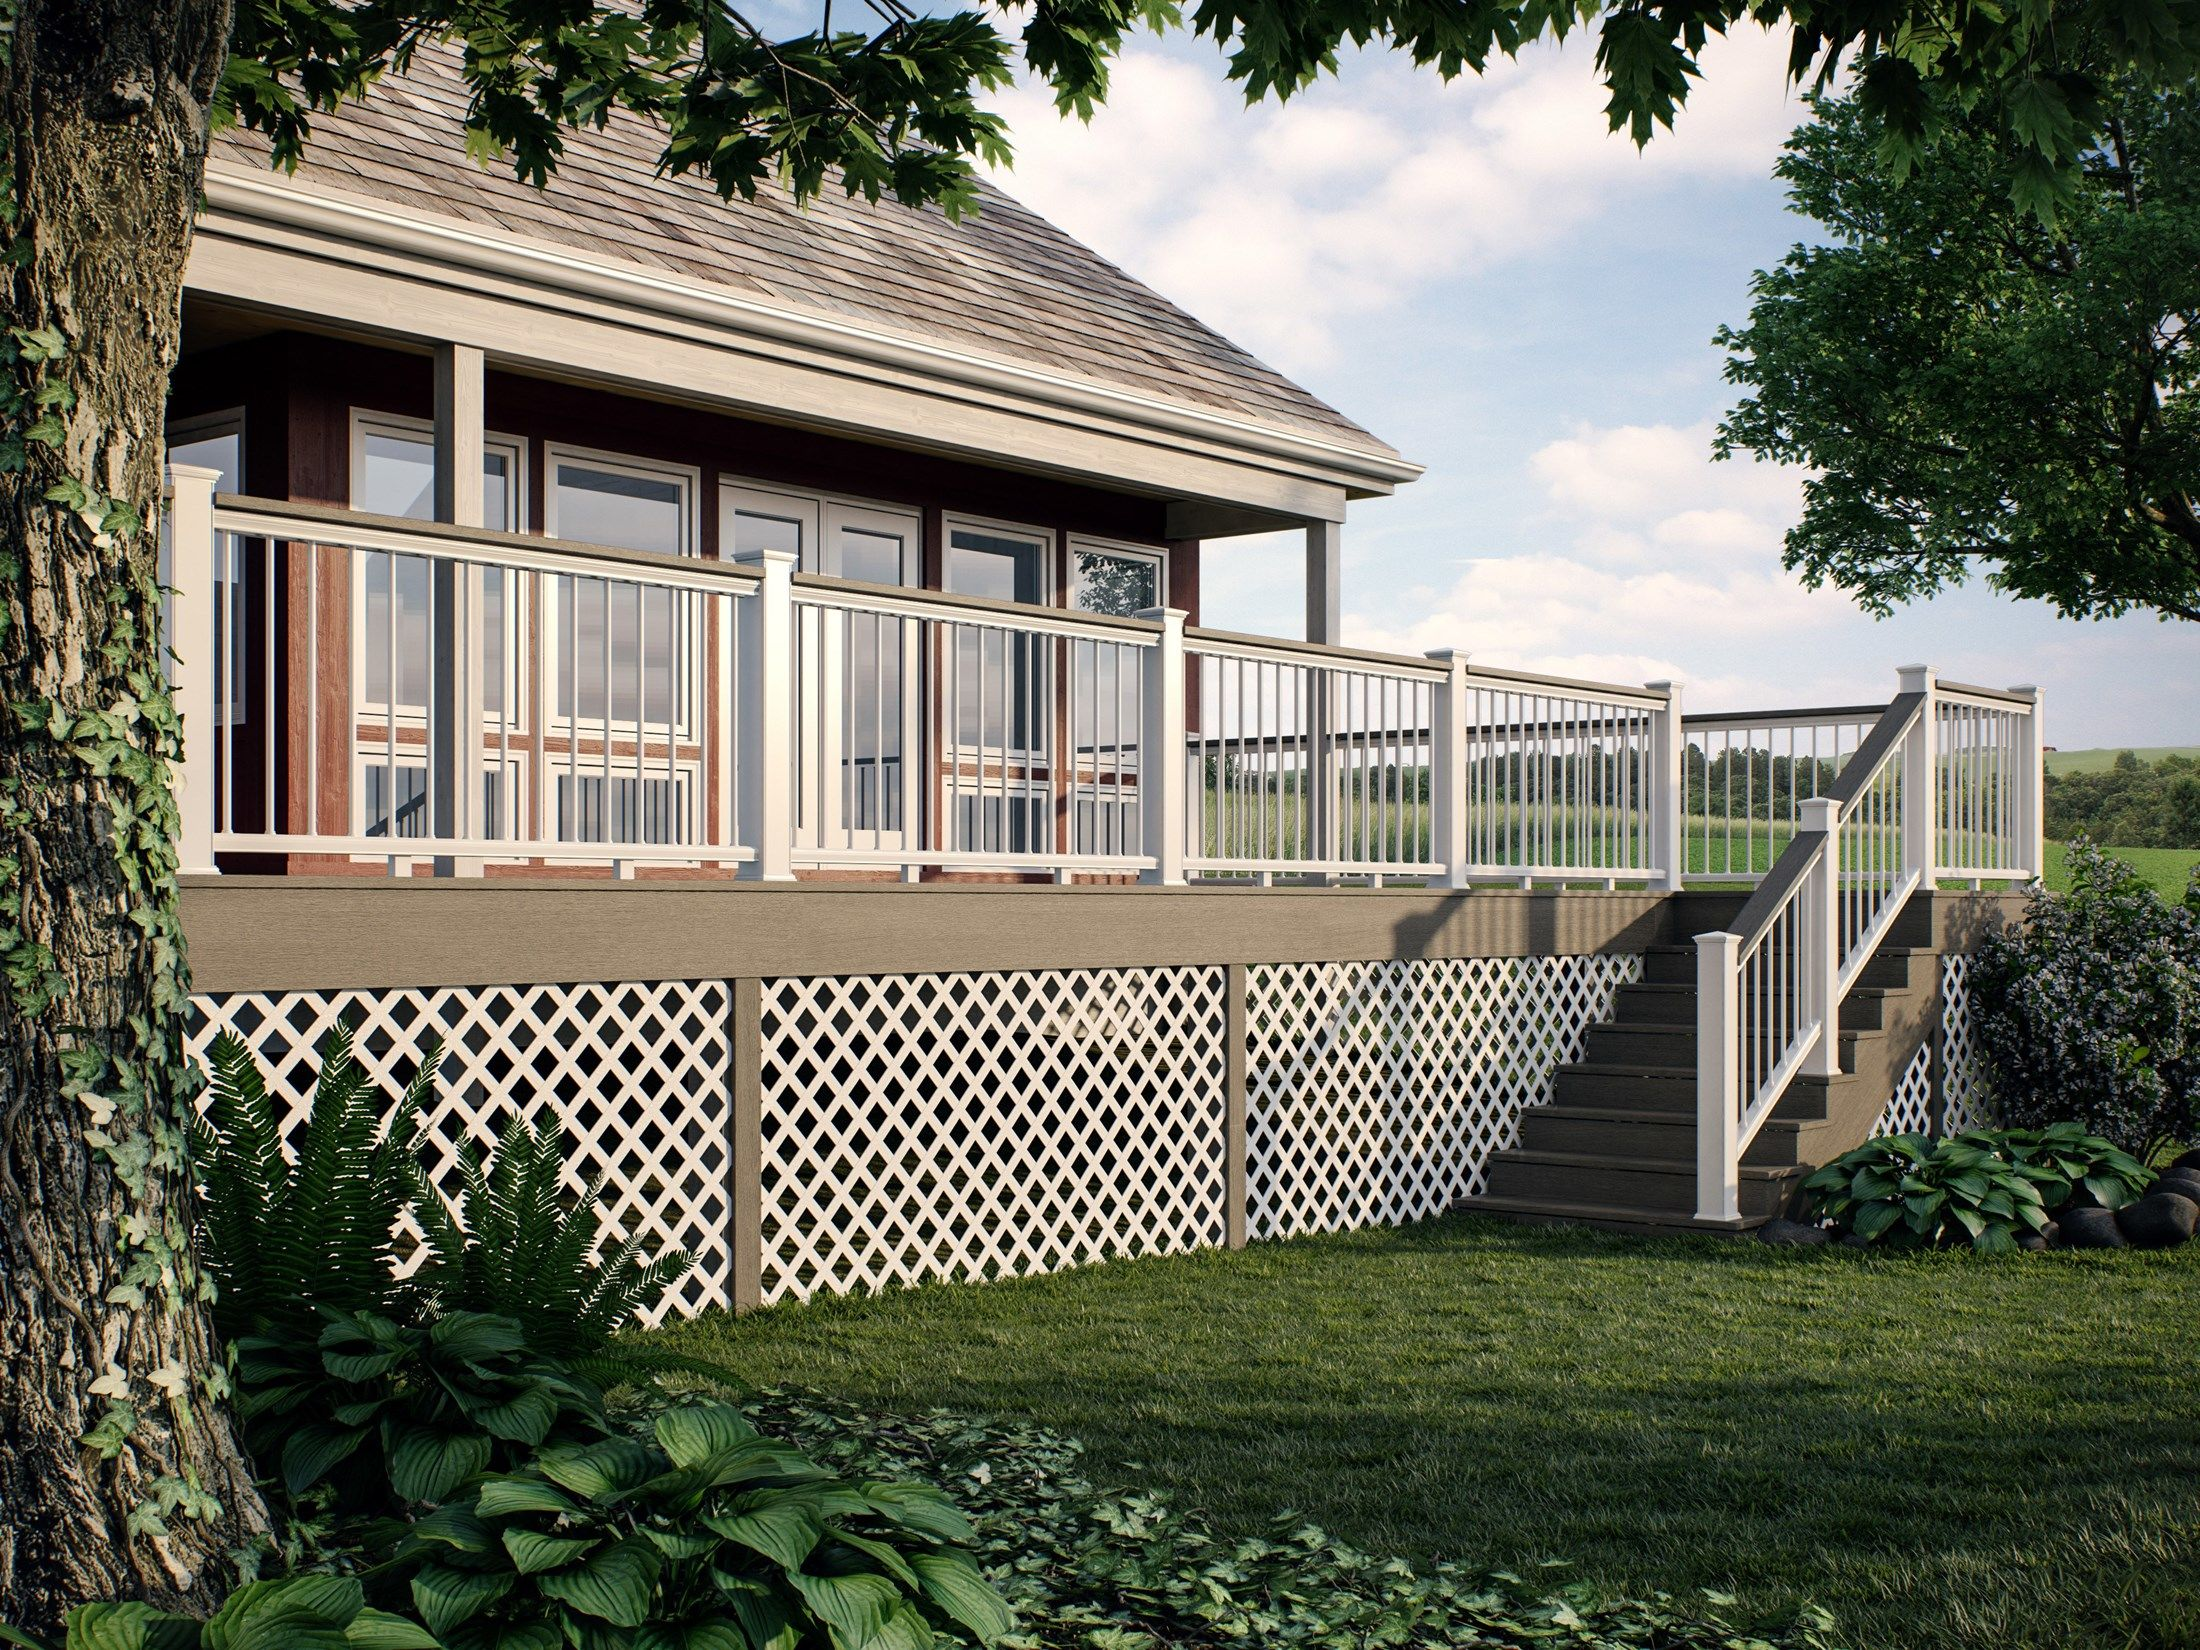 deck railing ideas - Deck Railing Design Ideas